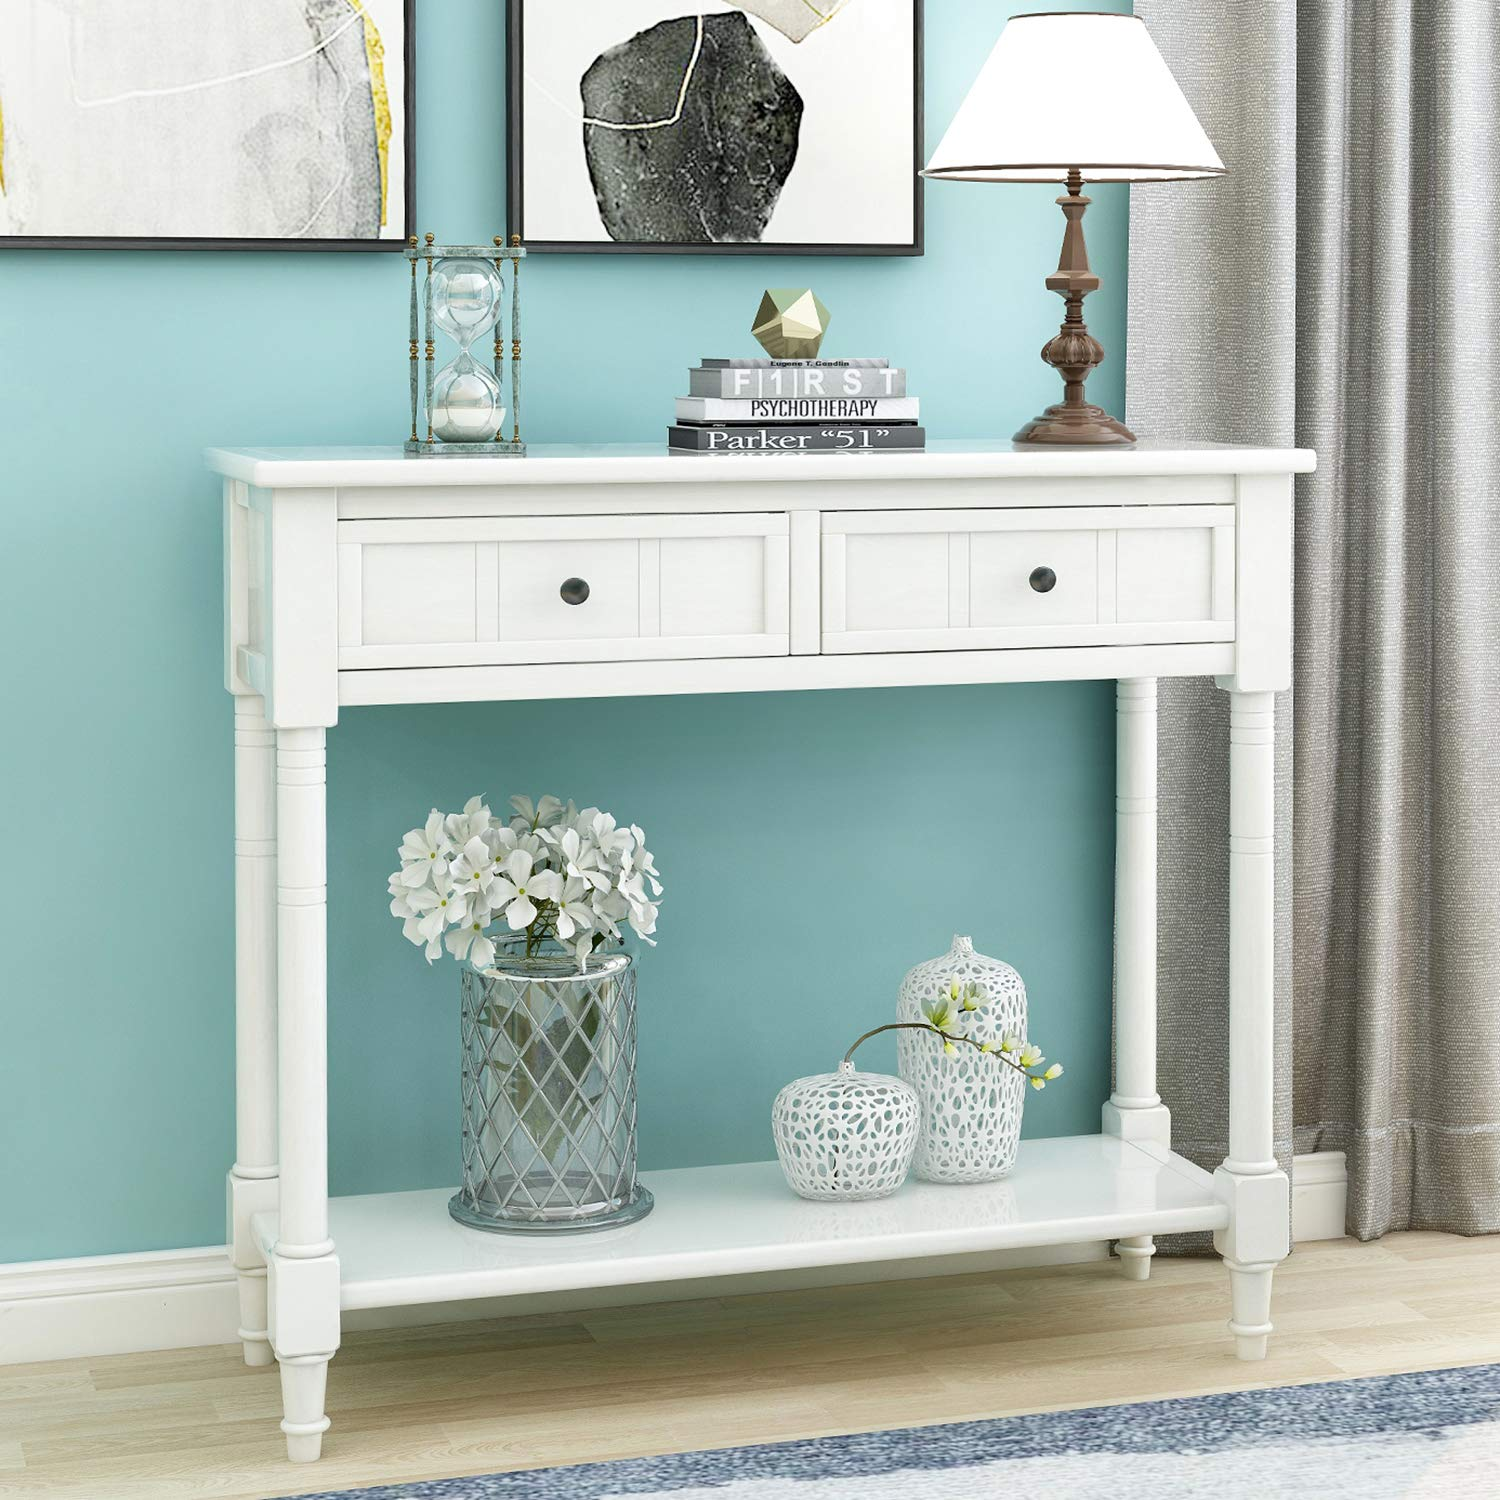 P PURLOVE Entryway Table Sideboard Wooden Sofa Table with 2 Drawers and Bottom Shelf (Ivory White) by P PURLOVE